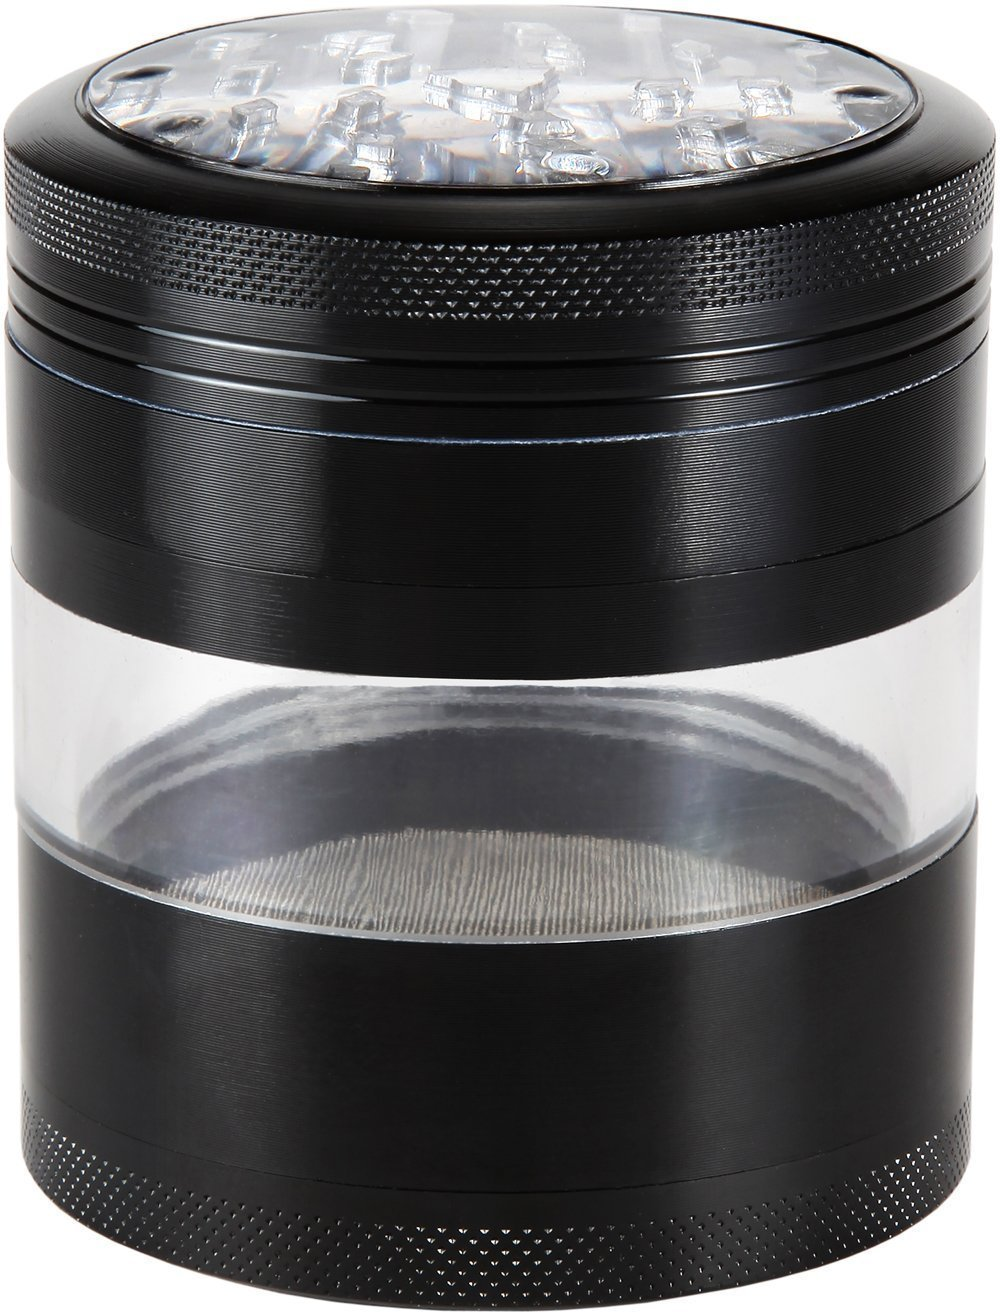 Zip Grinders Large Herb Grinder - Four Piece with Pollen Catcher - 3.25 Inches Tall - Premium Grade Aluminum (2.5'', Black)